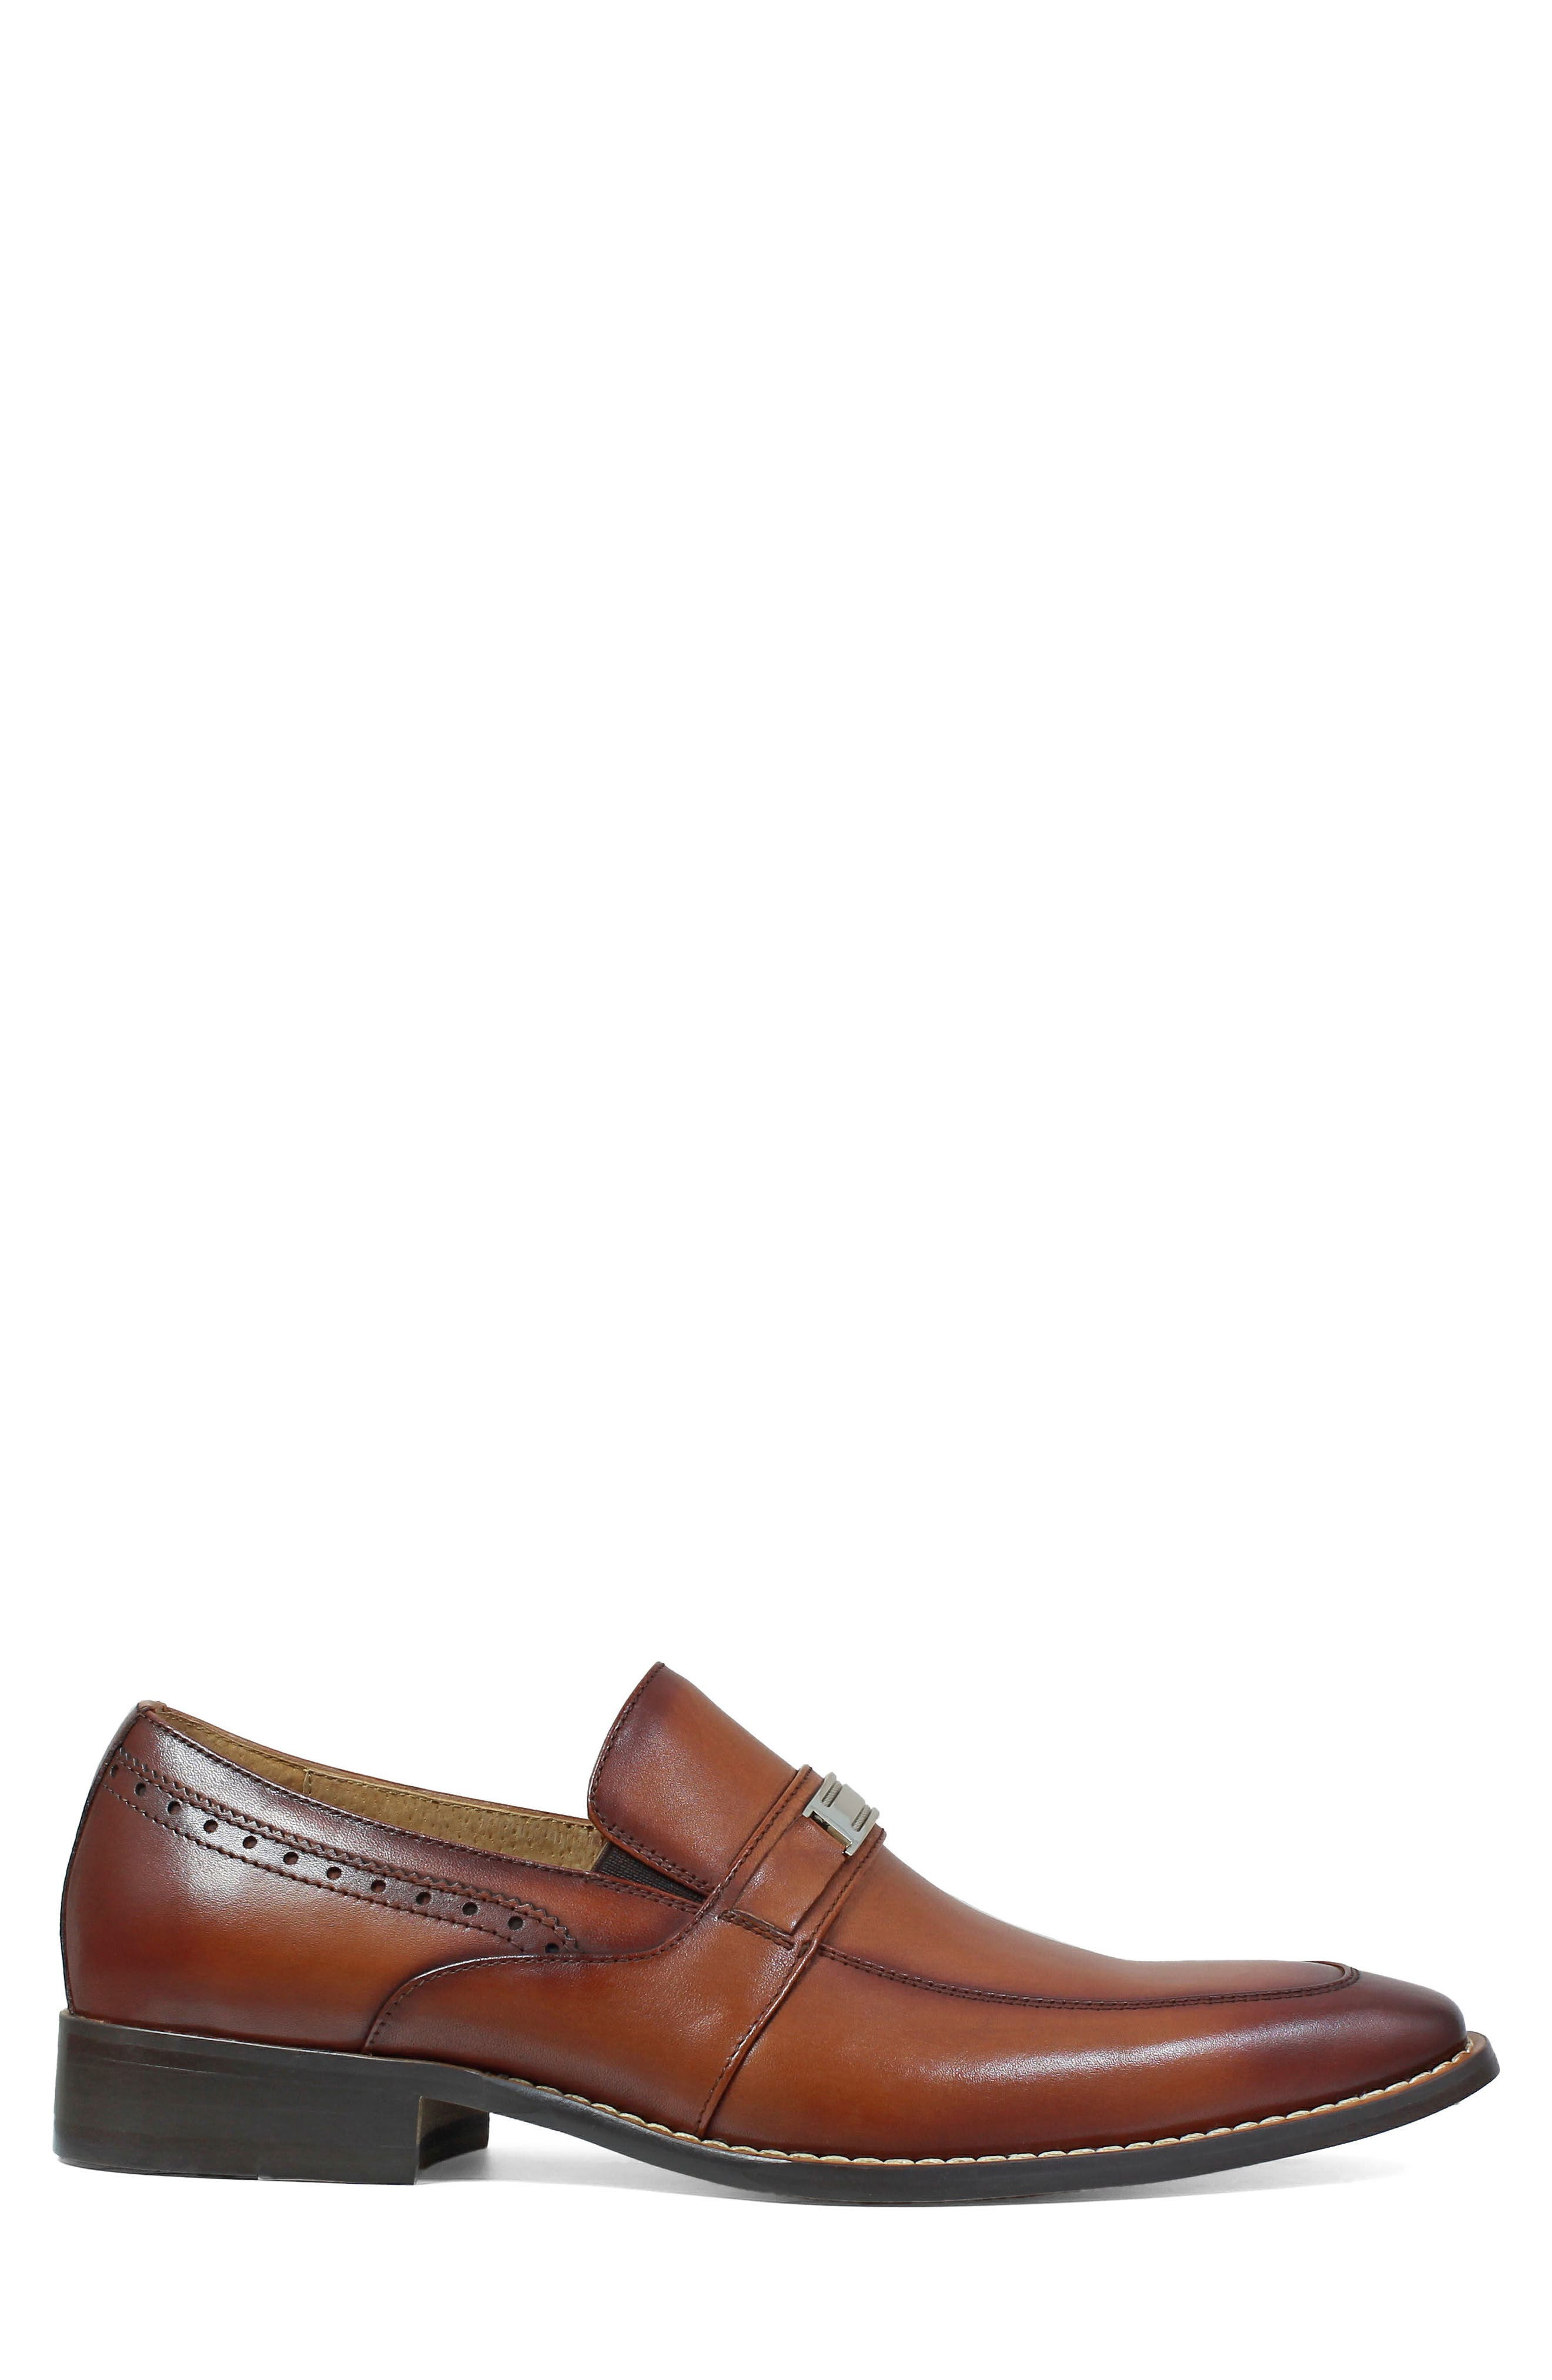 STACY ADAMS,                             Shaw Bit Loafer,                             Alternate thumbnail 3, color,                             201